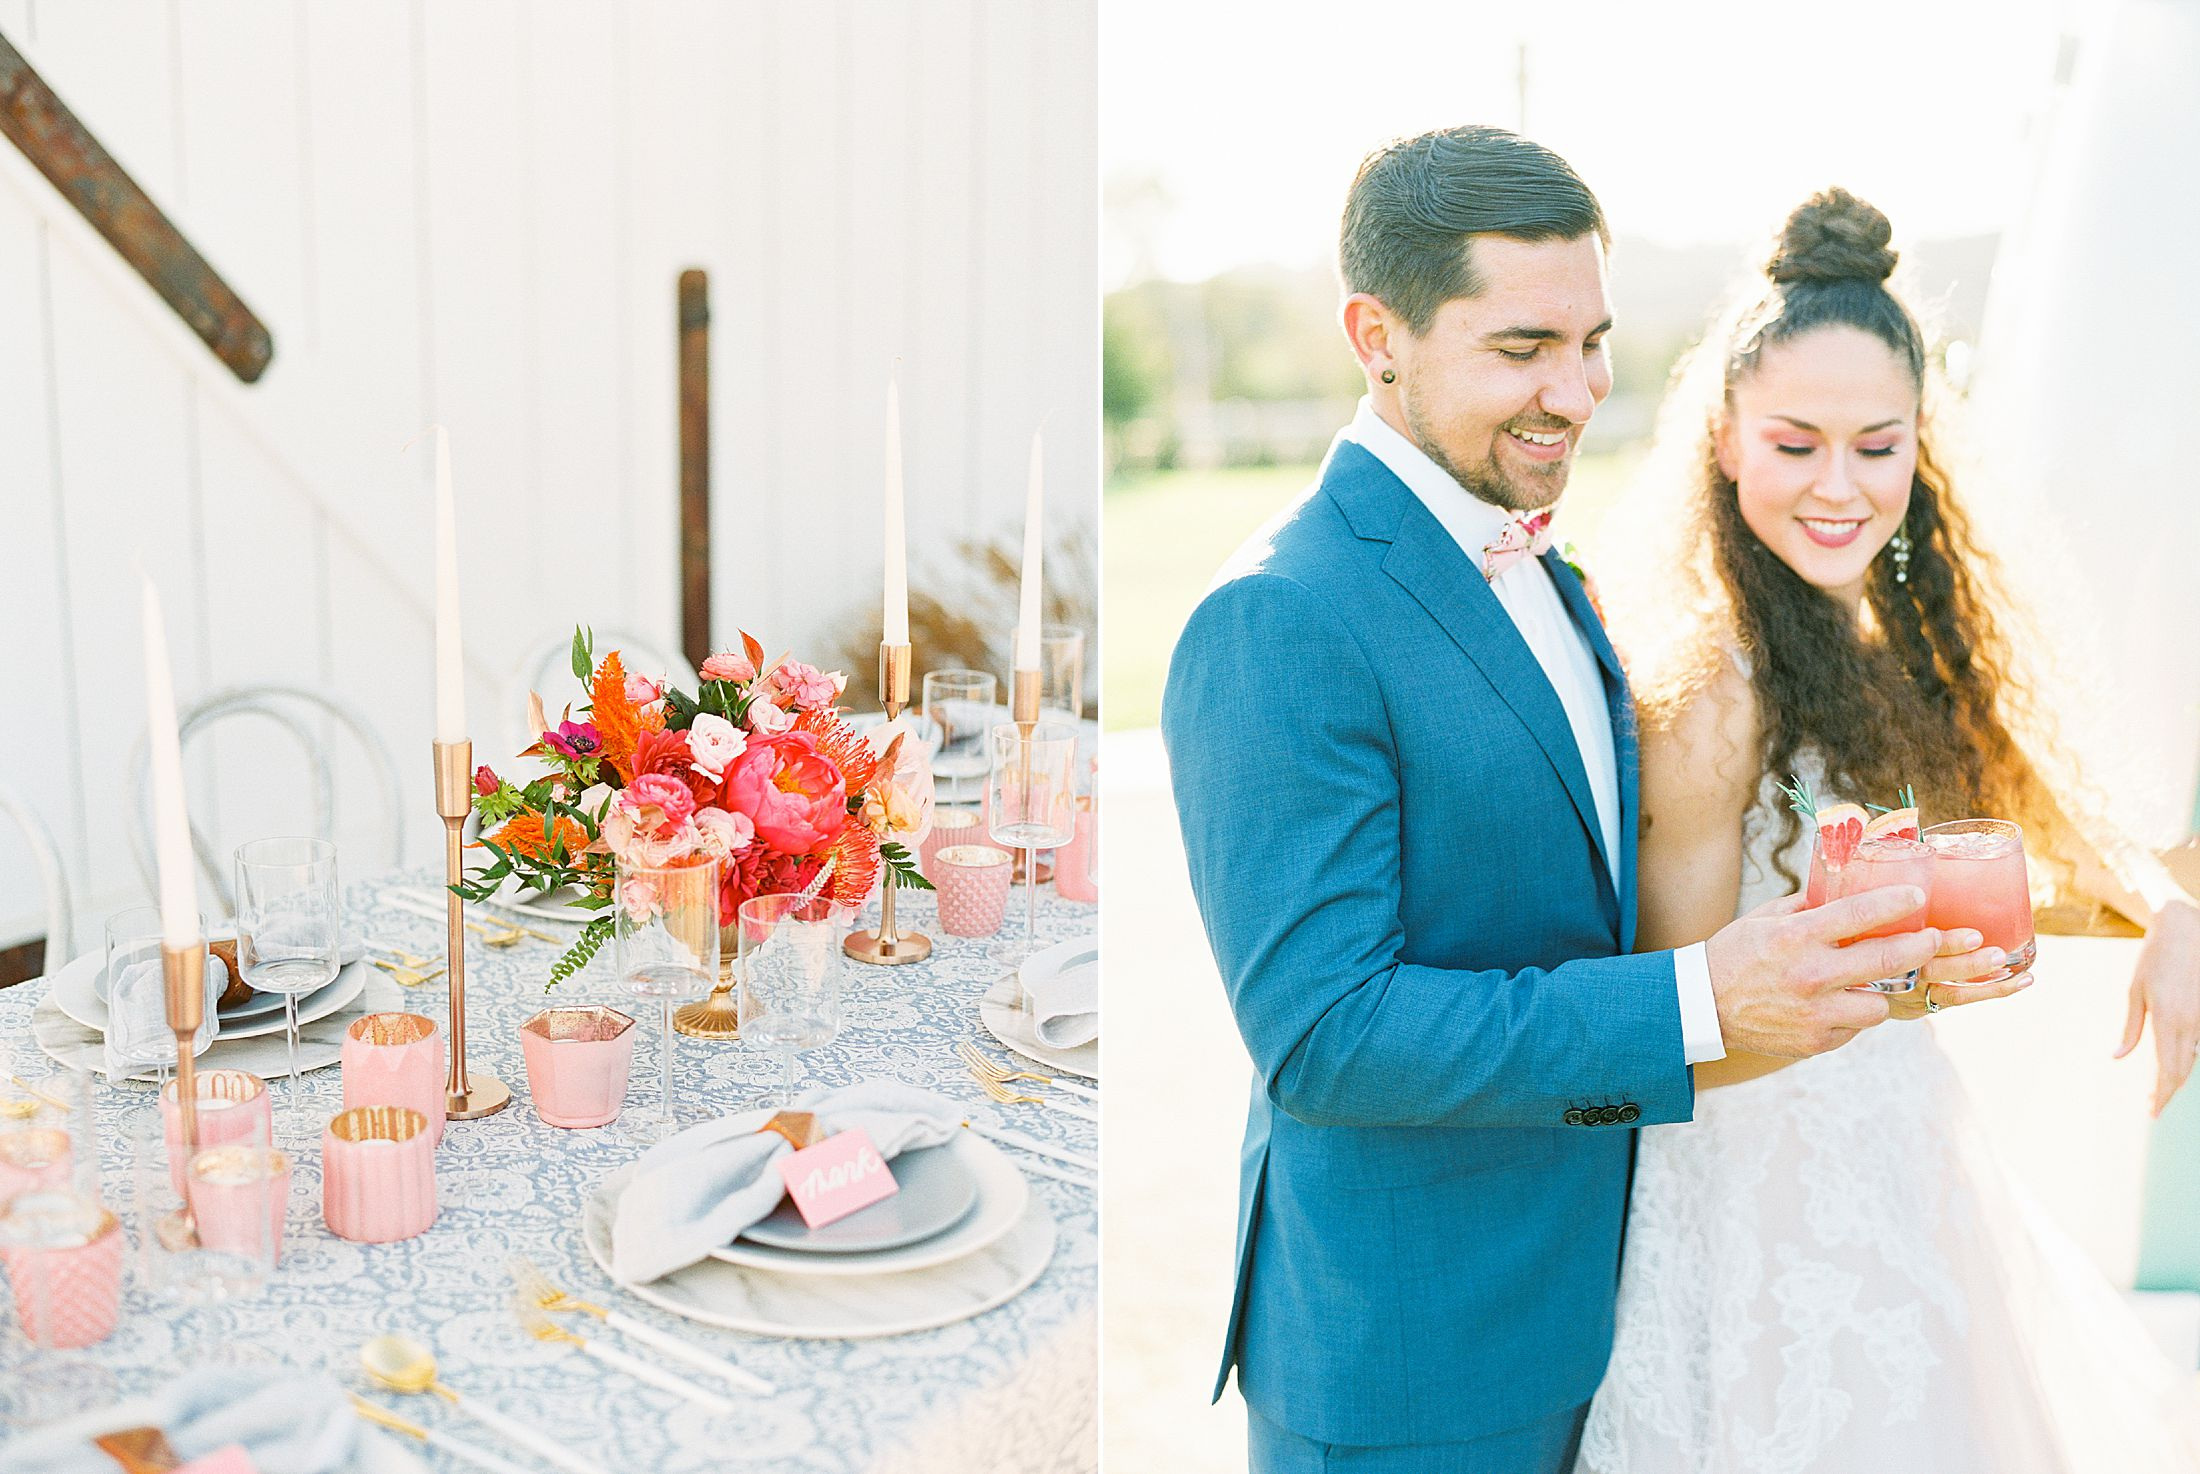 White Barn Edna Valley Wedding Inspiration - San Luis Obispo Wedding - Featured on Green Wedding Shoes - Ashley Baumgartner - FM Events SLO - SLO Wedding Photographer_0071.jpg